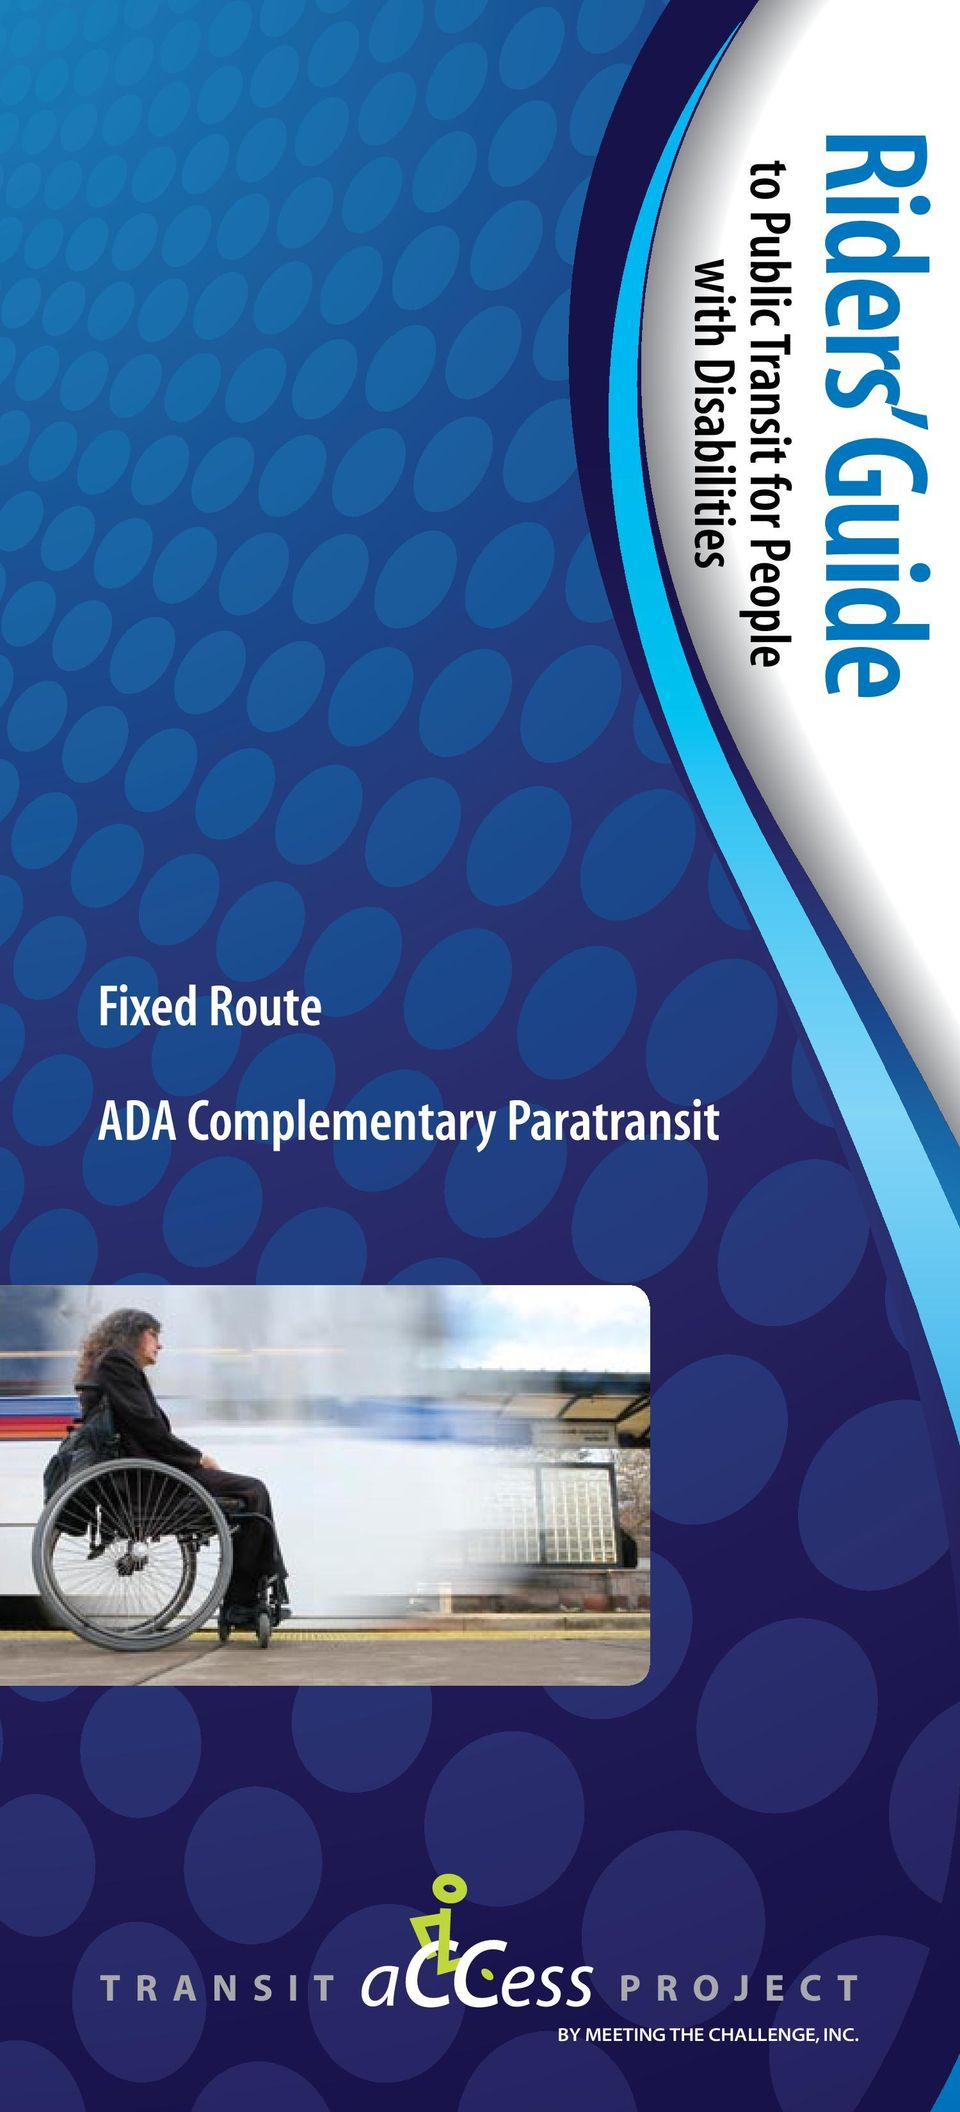 Fixed Route ADA Complementary